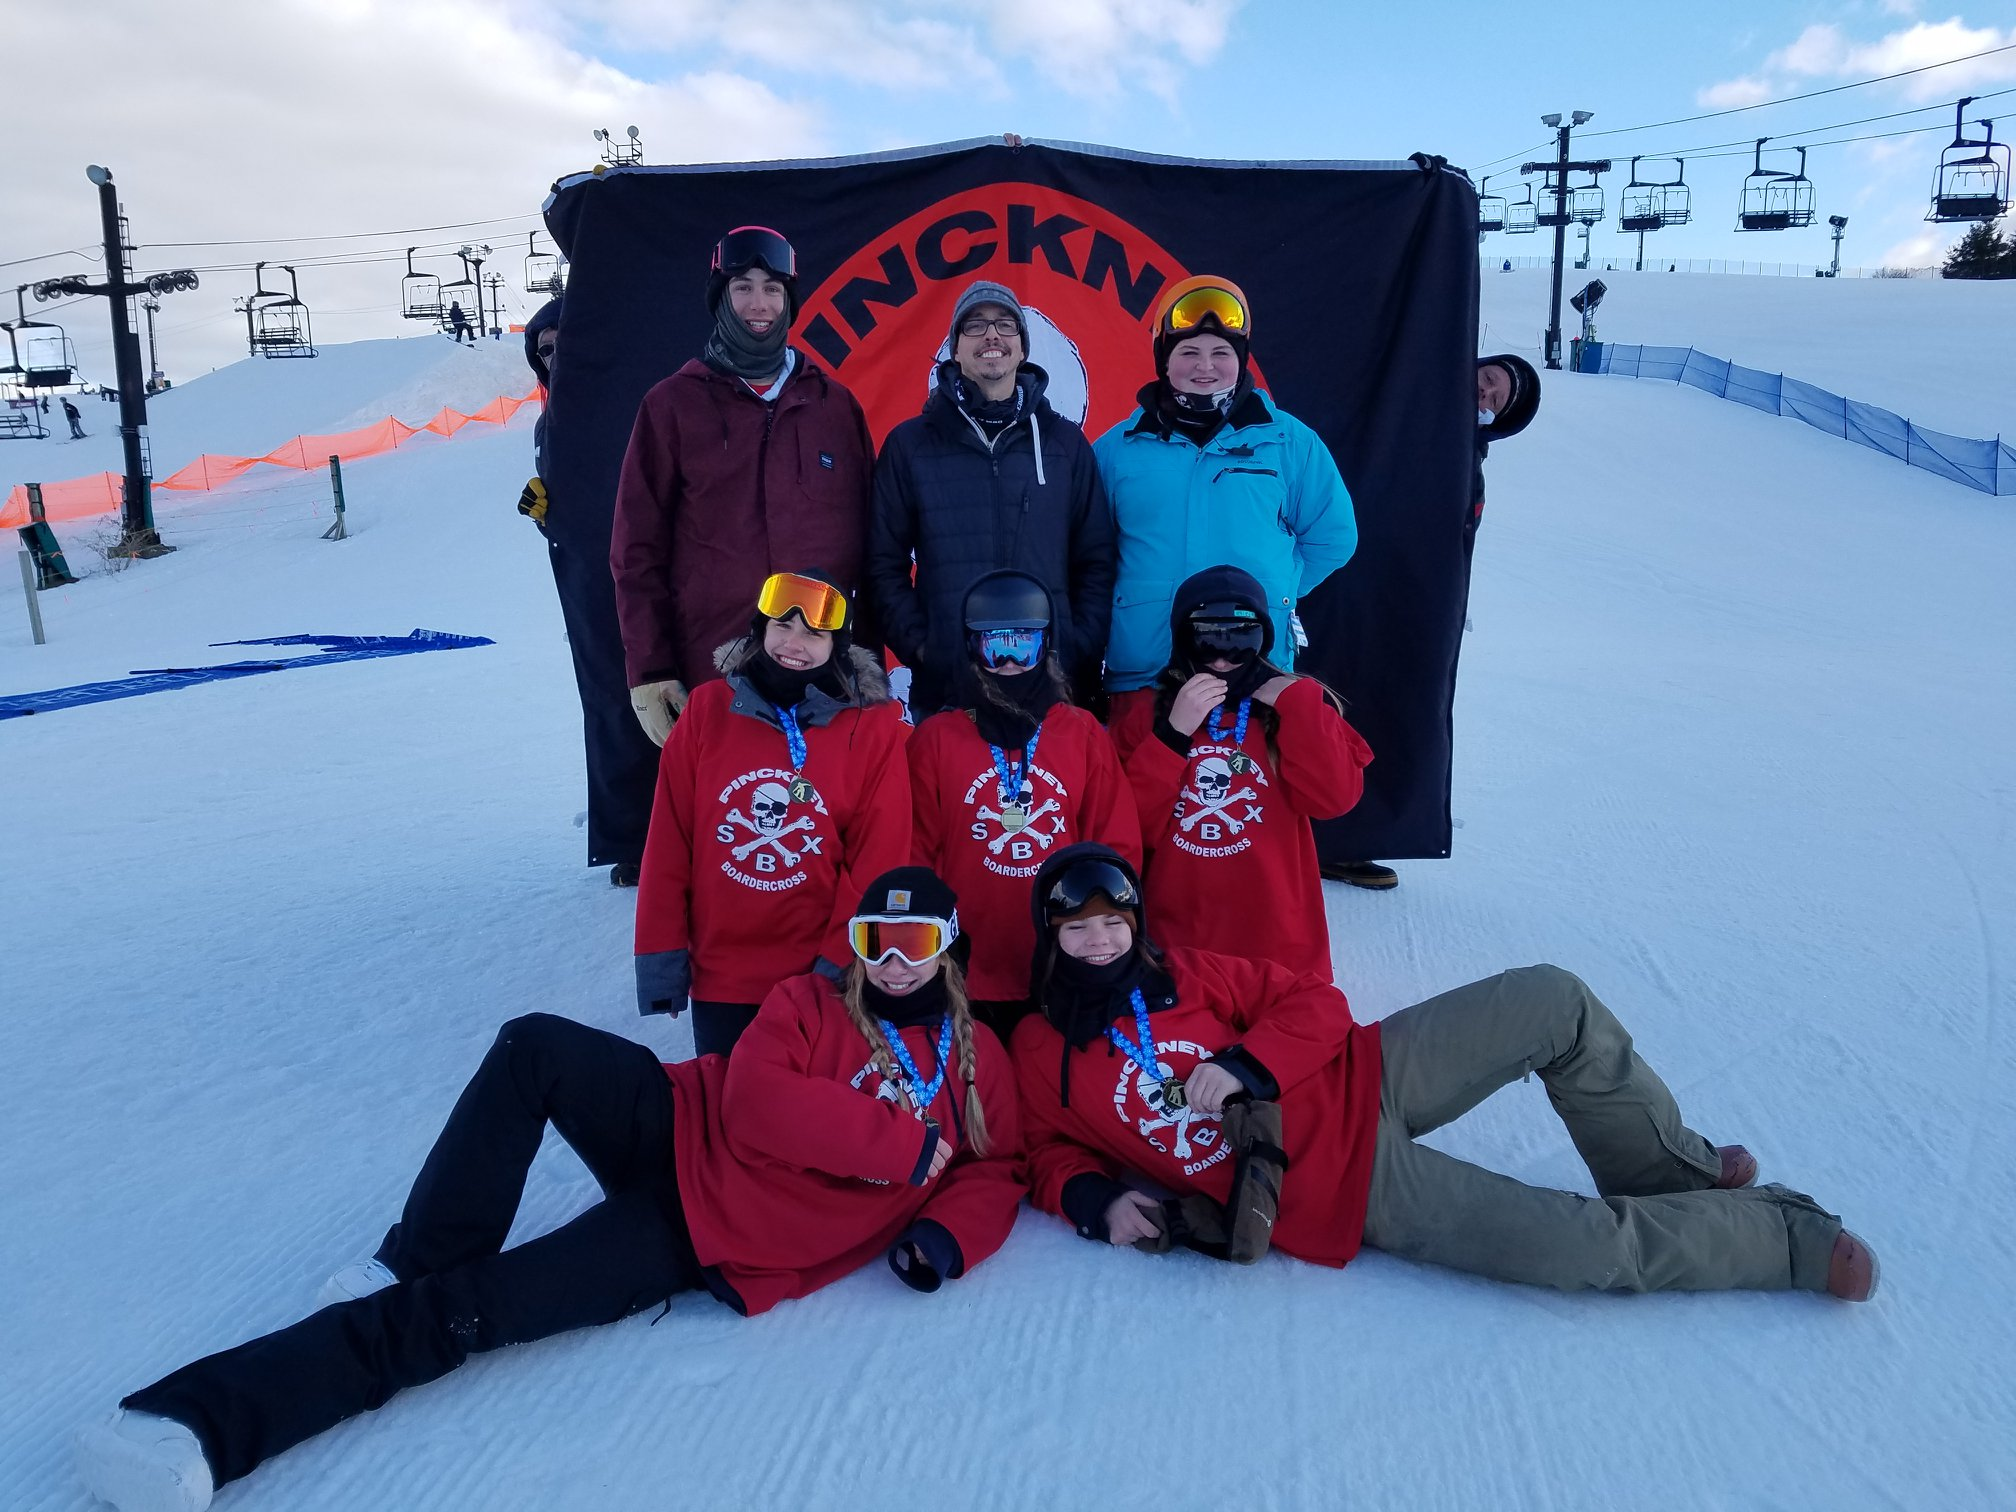 SBX State Champions!